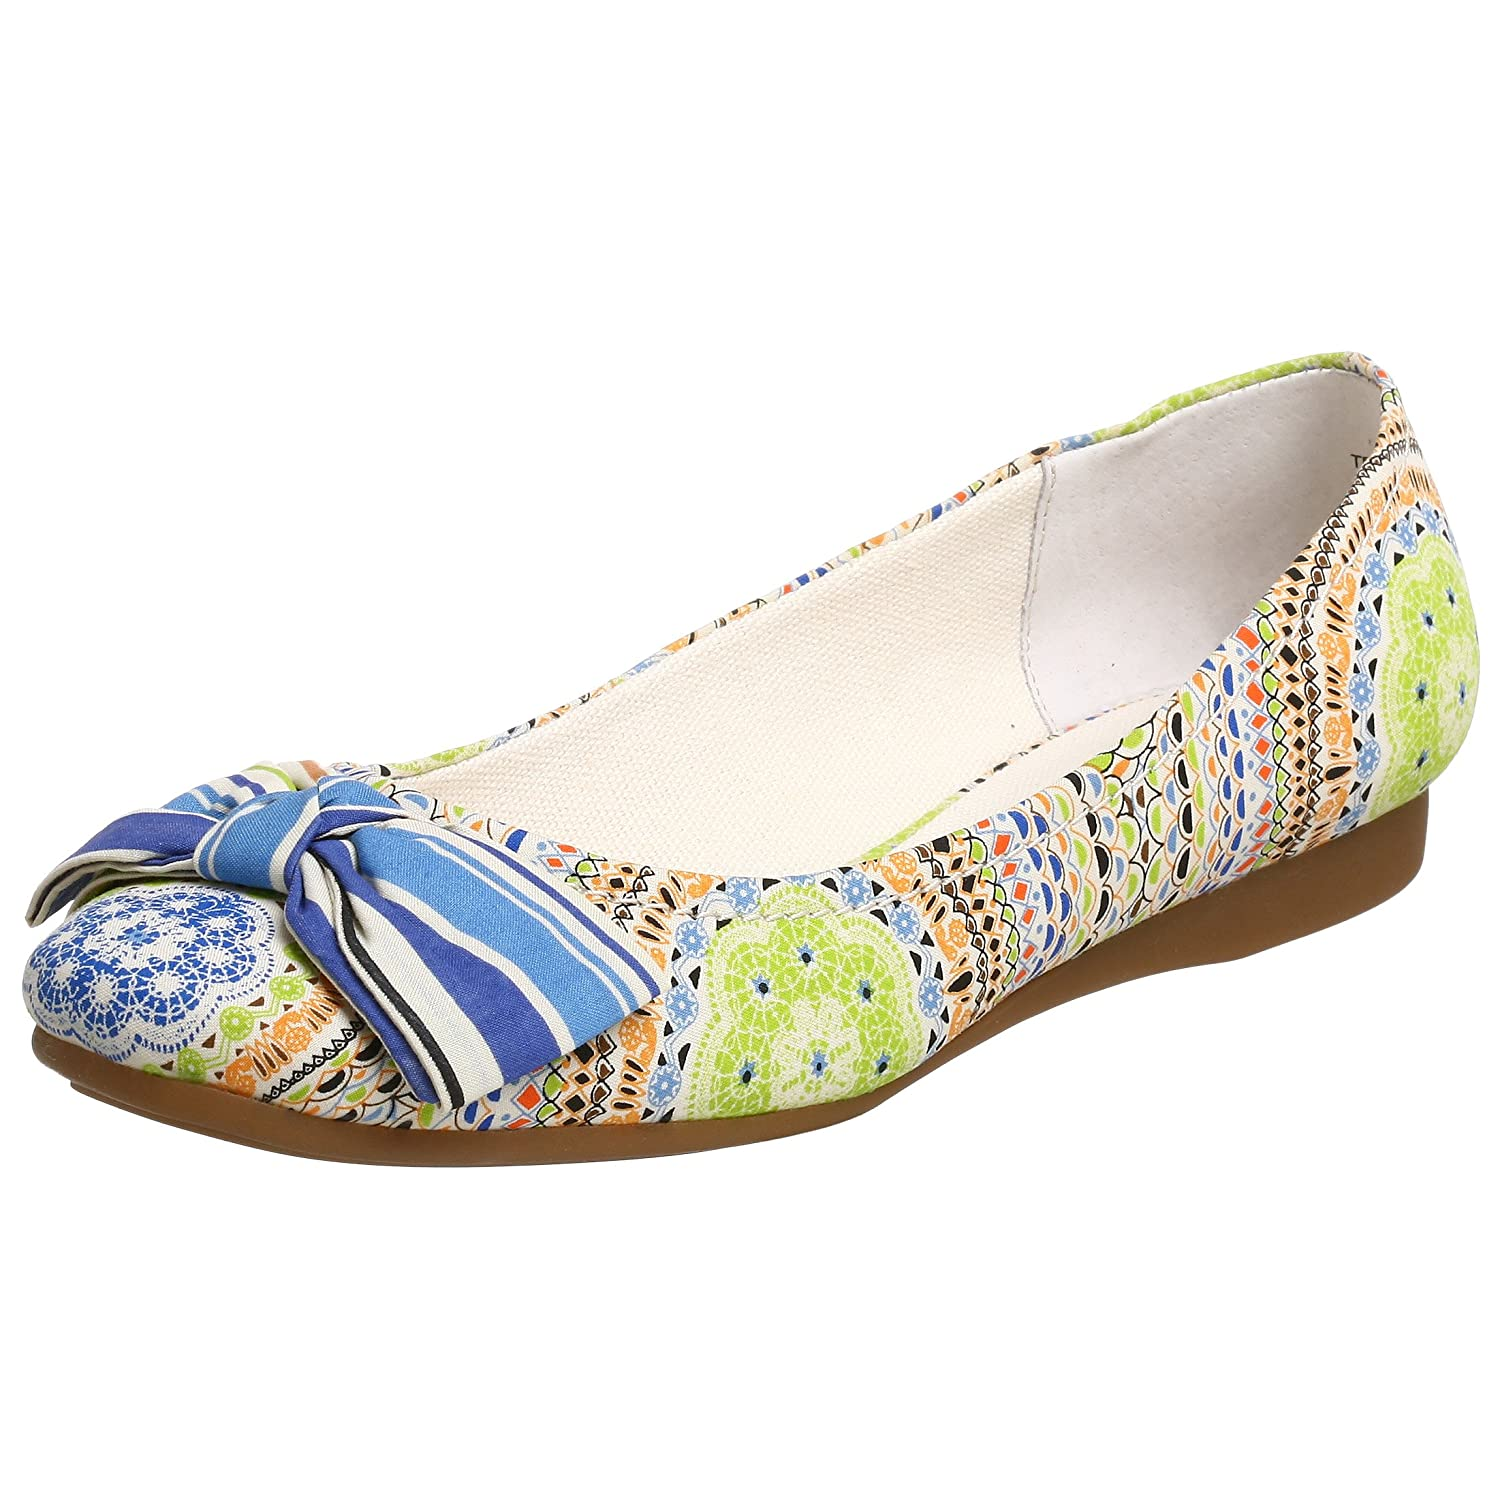 Nine West Women's Isadora Ballet Flat - Free Overnight Shipping & Return Shipping: Endless.com